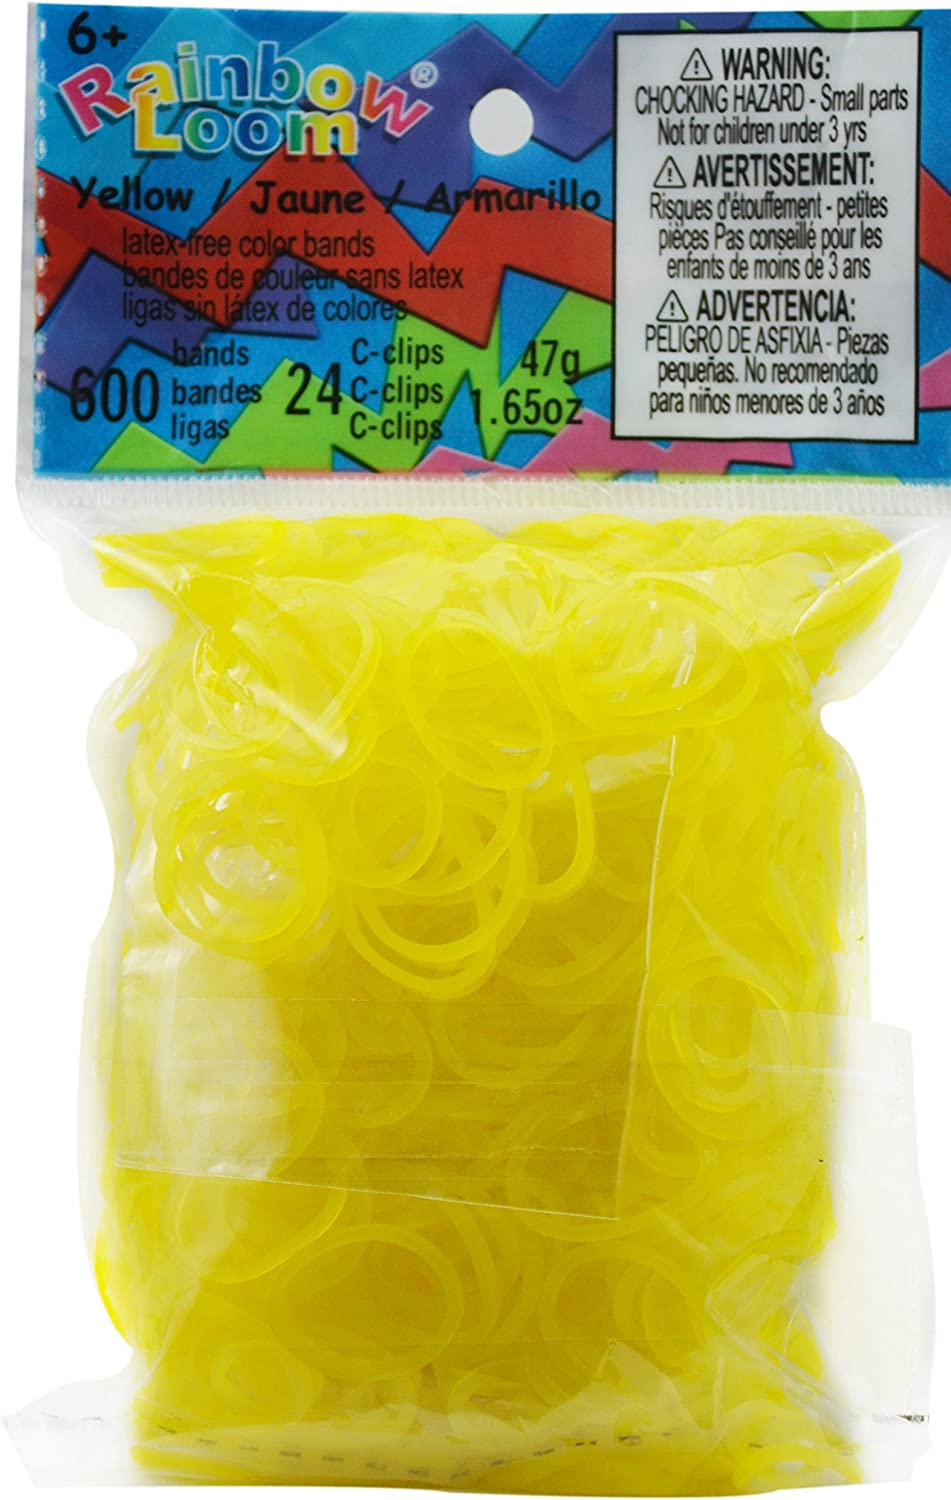 clips-Bracelet Bands fits Rainbow Loom Jelly Yellow Loom Bands 600+24 S